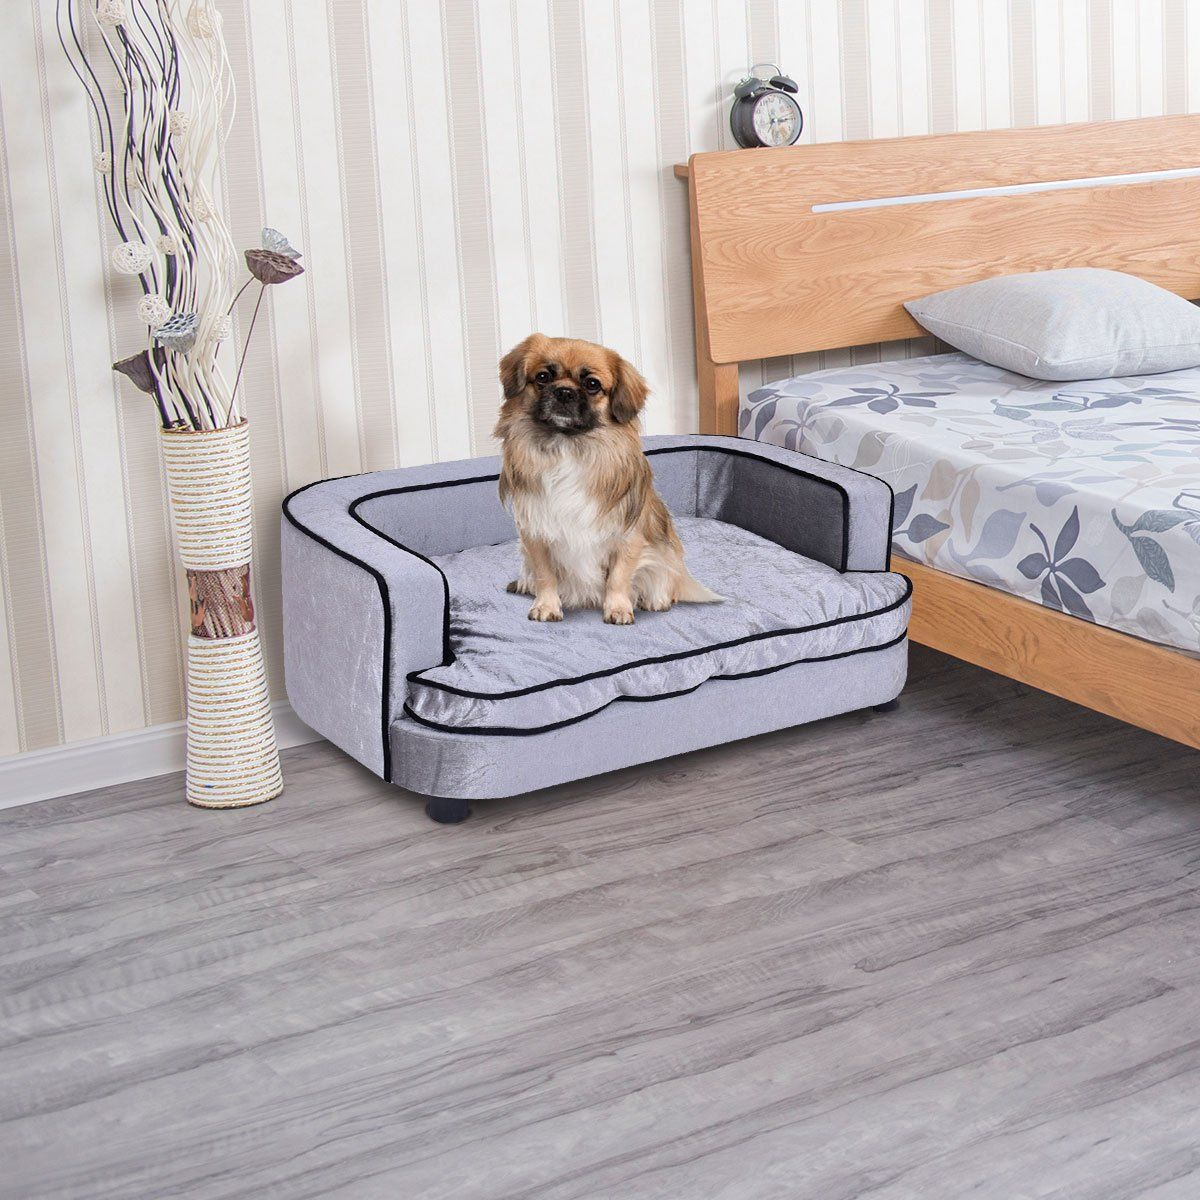 Giantex Pet Sofa Orthopedic Lounge Sofa Bed Puppy Cat Sleeping Home Comfortable Couch Pet Bed With Removable Cushion For Large Dog Beds Furniture Comfortable Couch Couch Pet Bed Couch Cushions